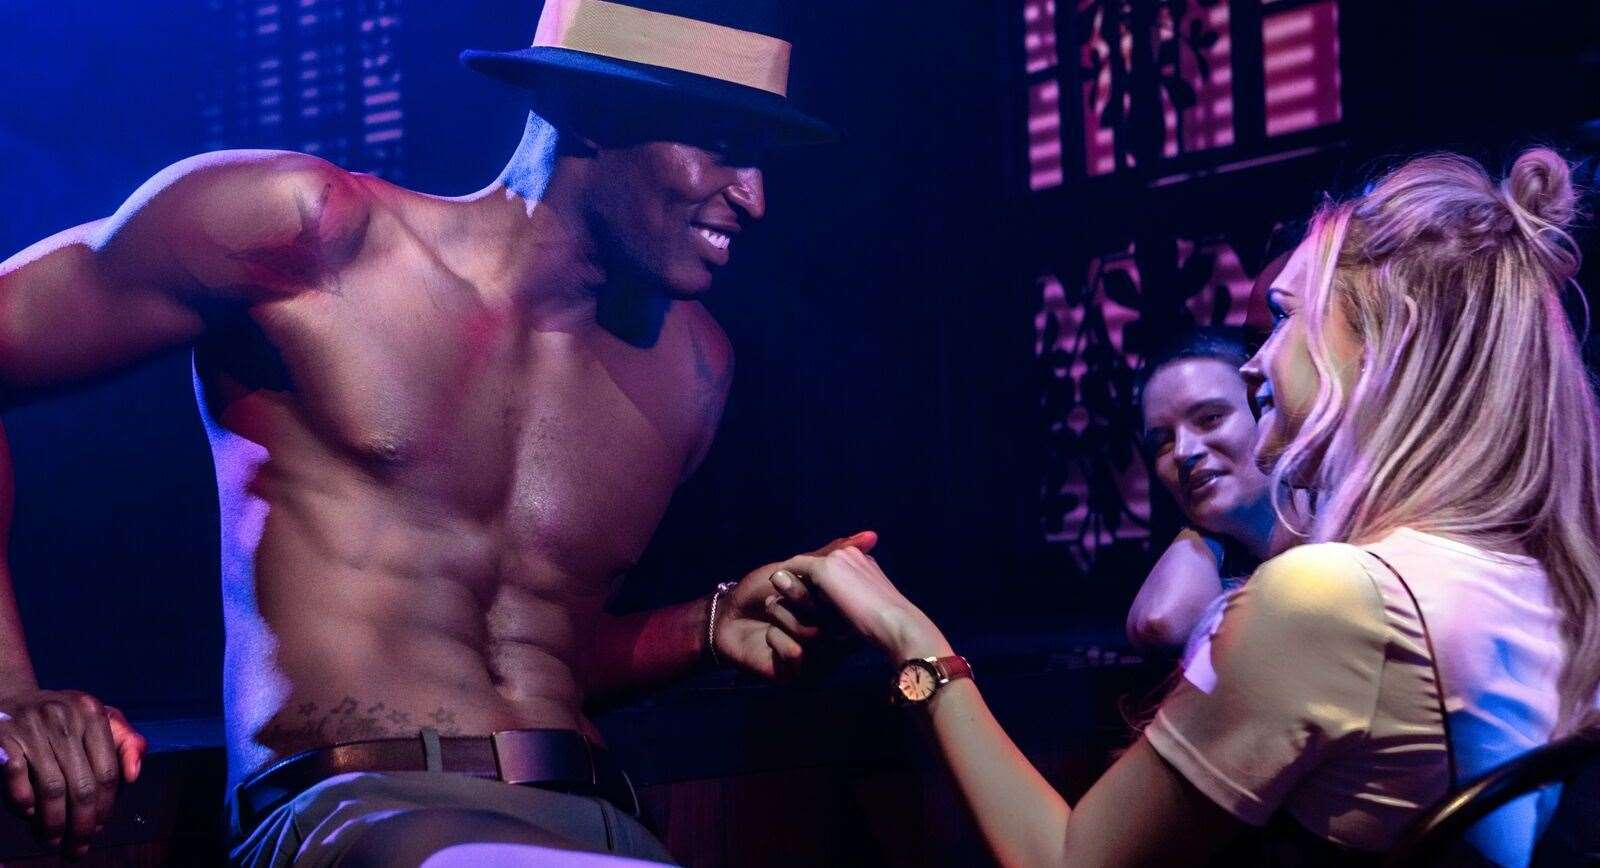 Attendees 18 years and older are invited to enter Magic Mike's mythical club.